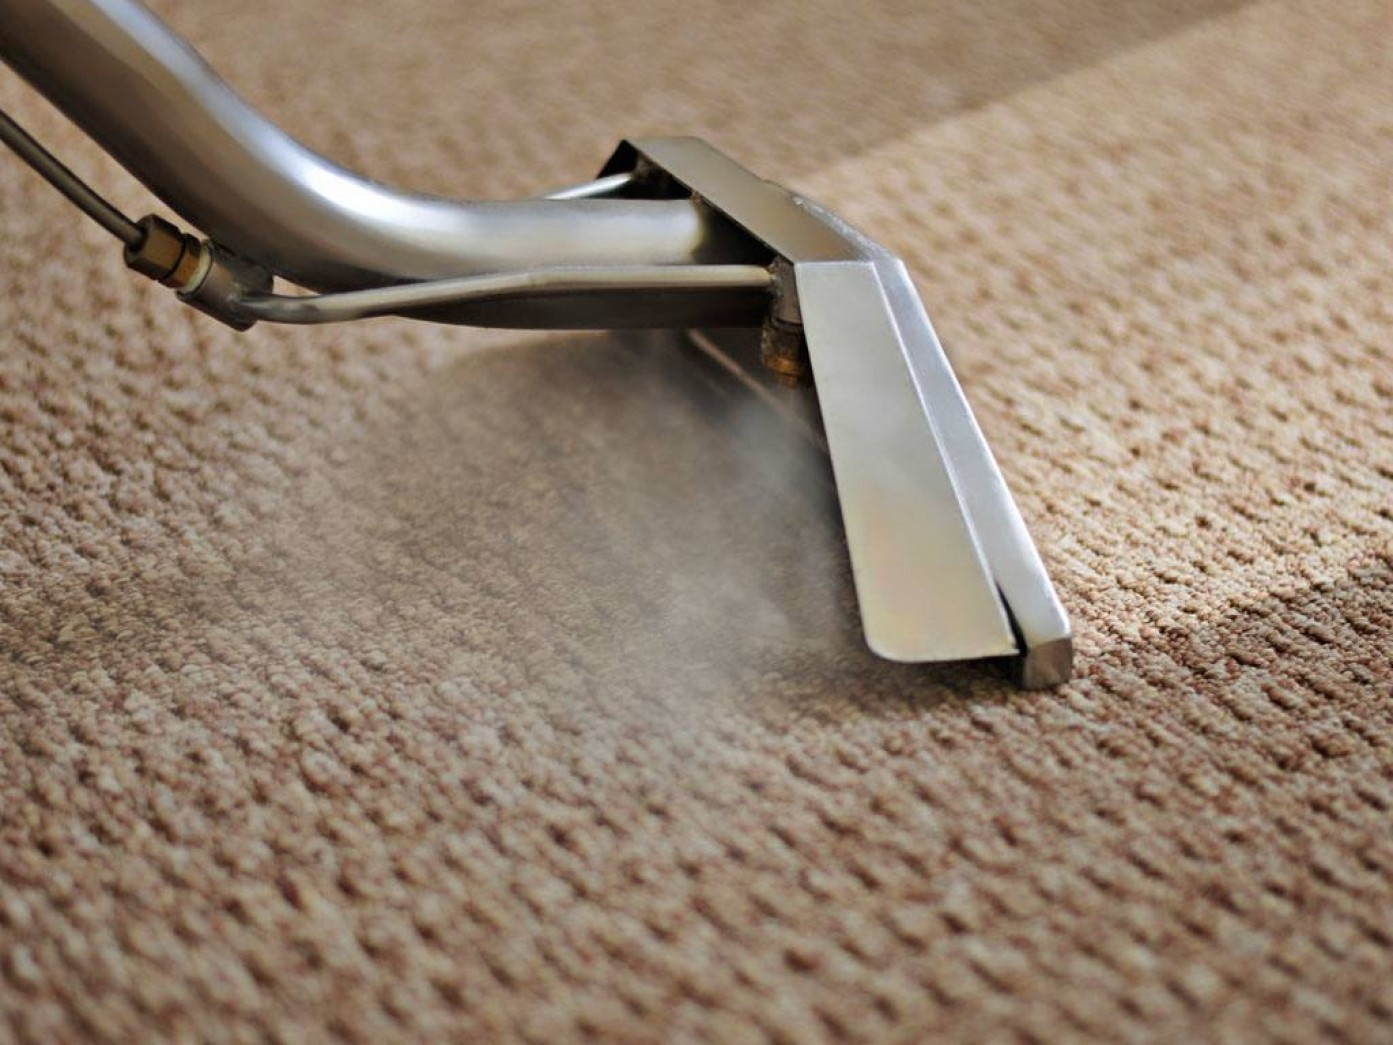 The Important Things About Deep Steam Carpet Cleaning | by Kylie Morriz |  Medium